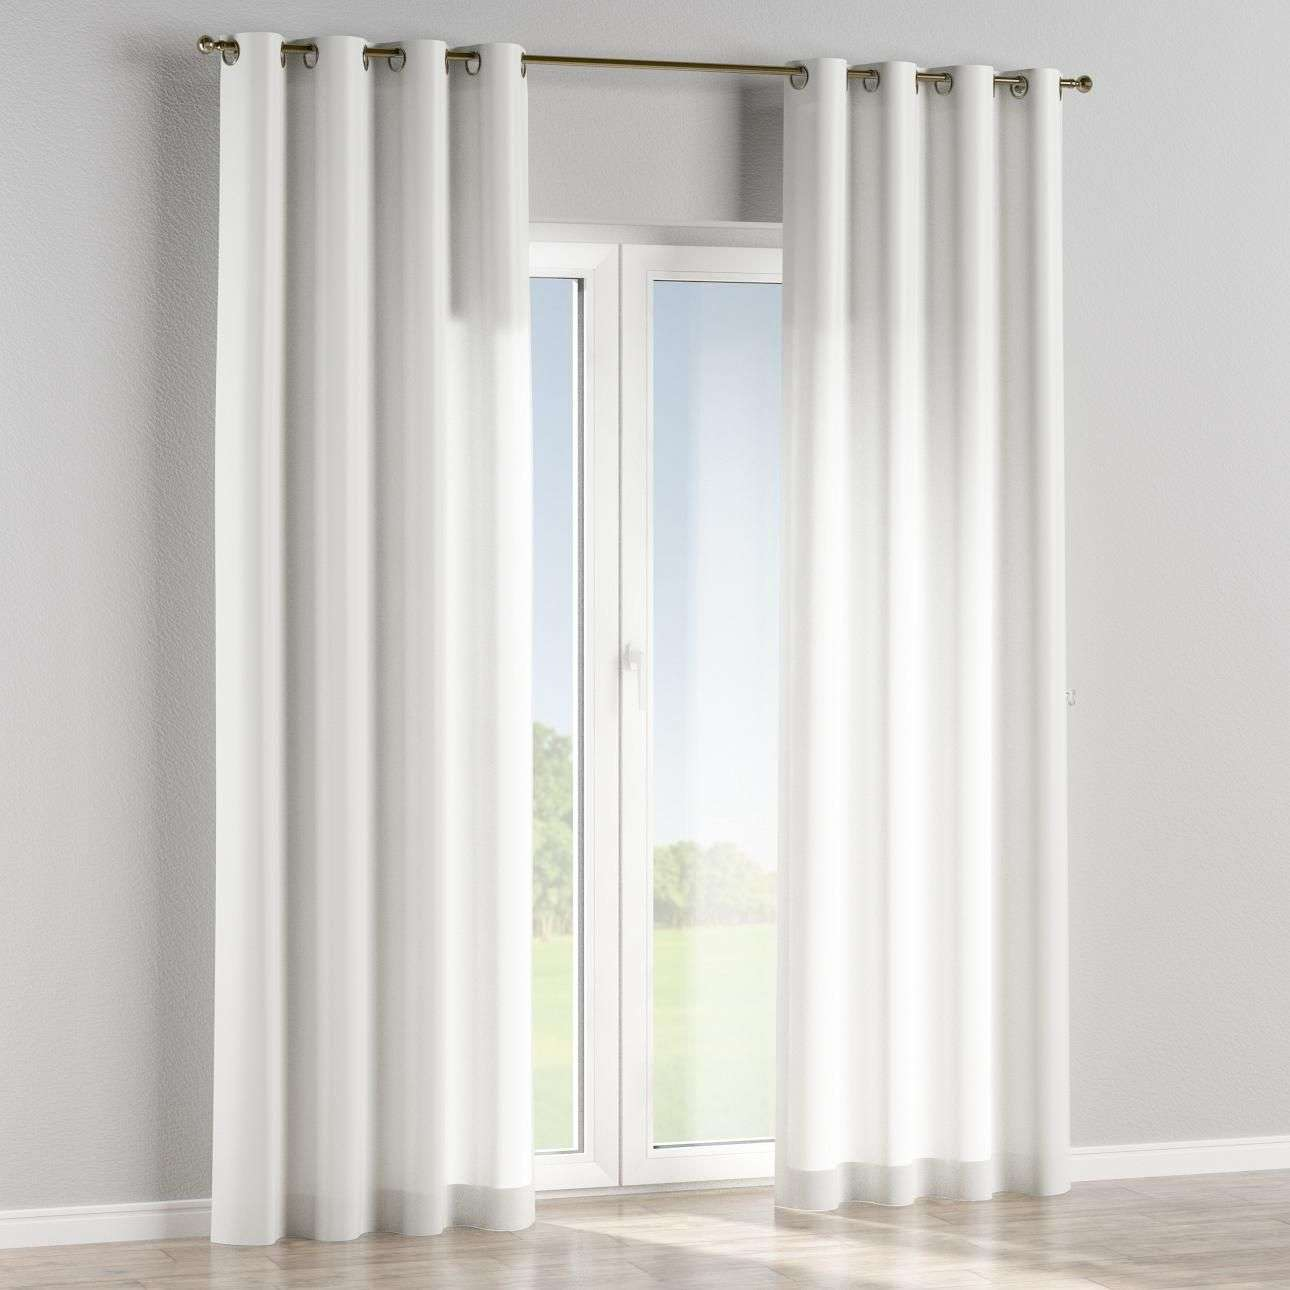 Eyelet curtains in collection Mirella, fabric: 141-11